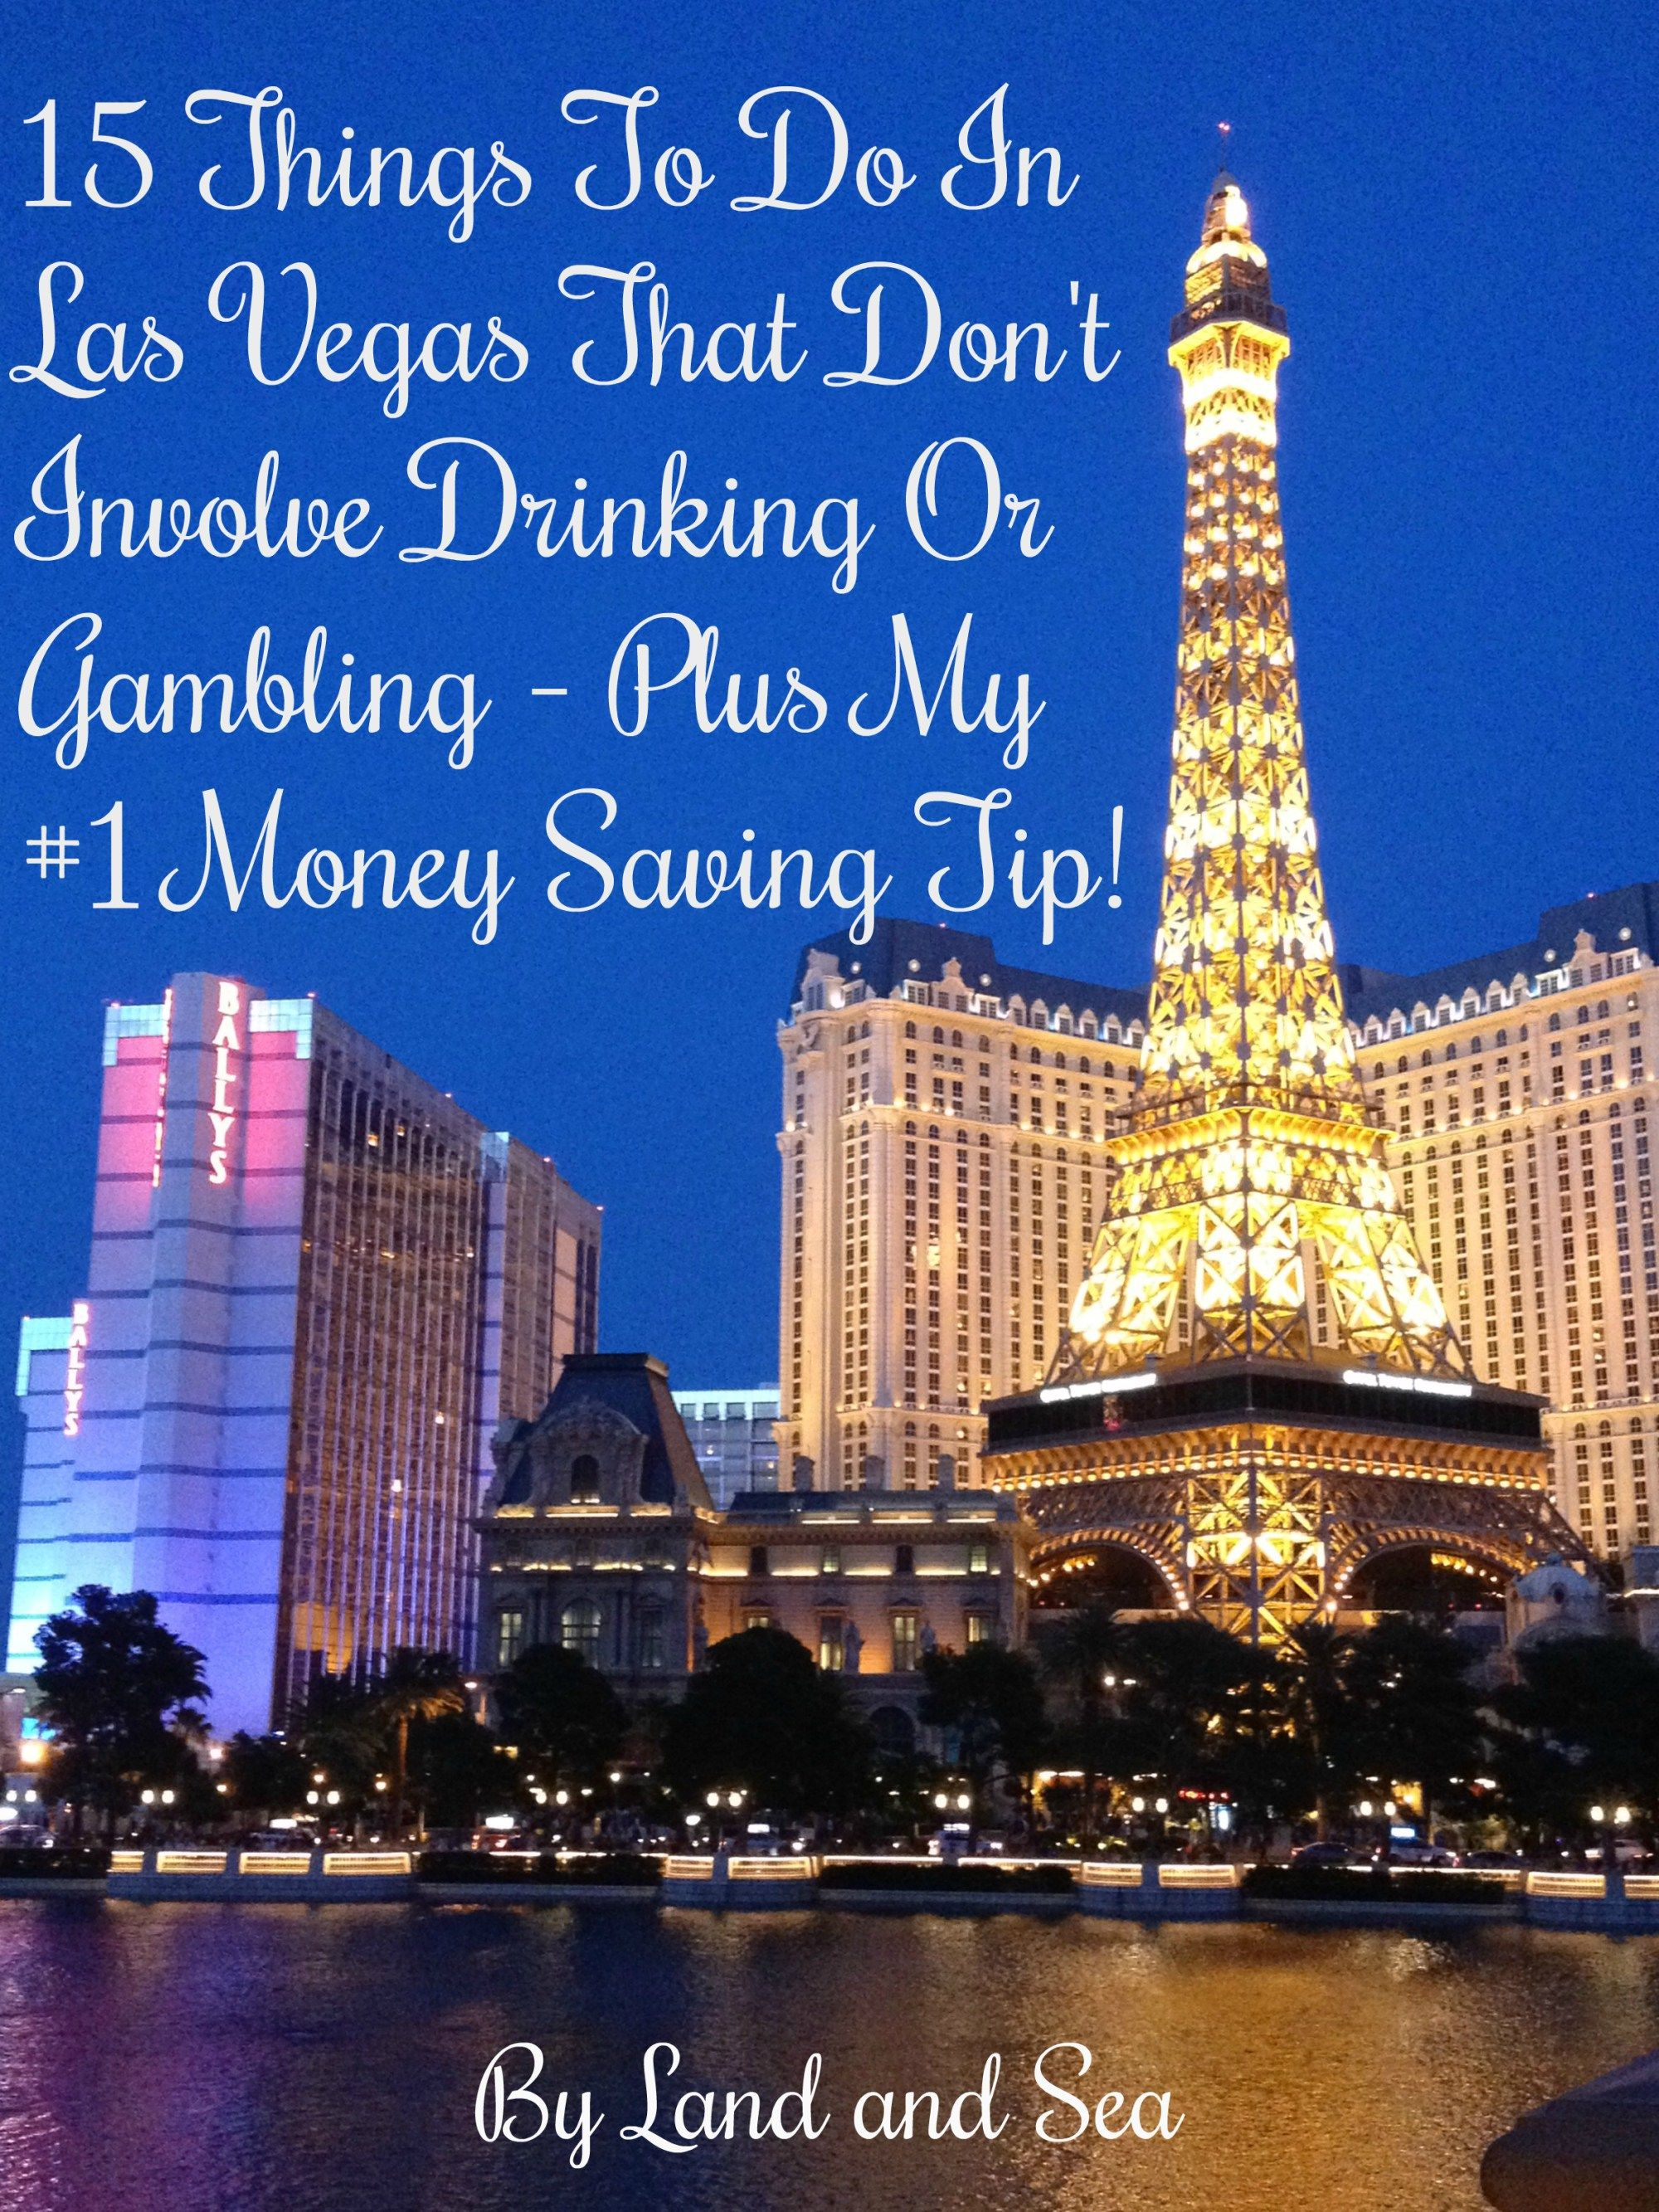 15 things to do in las vegas that dont involve drinking